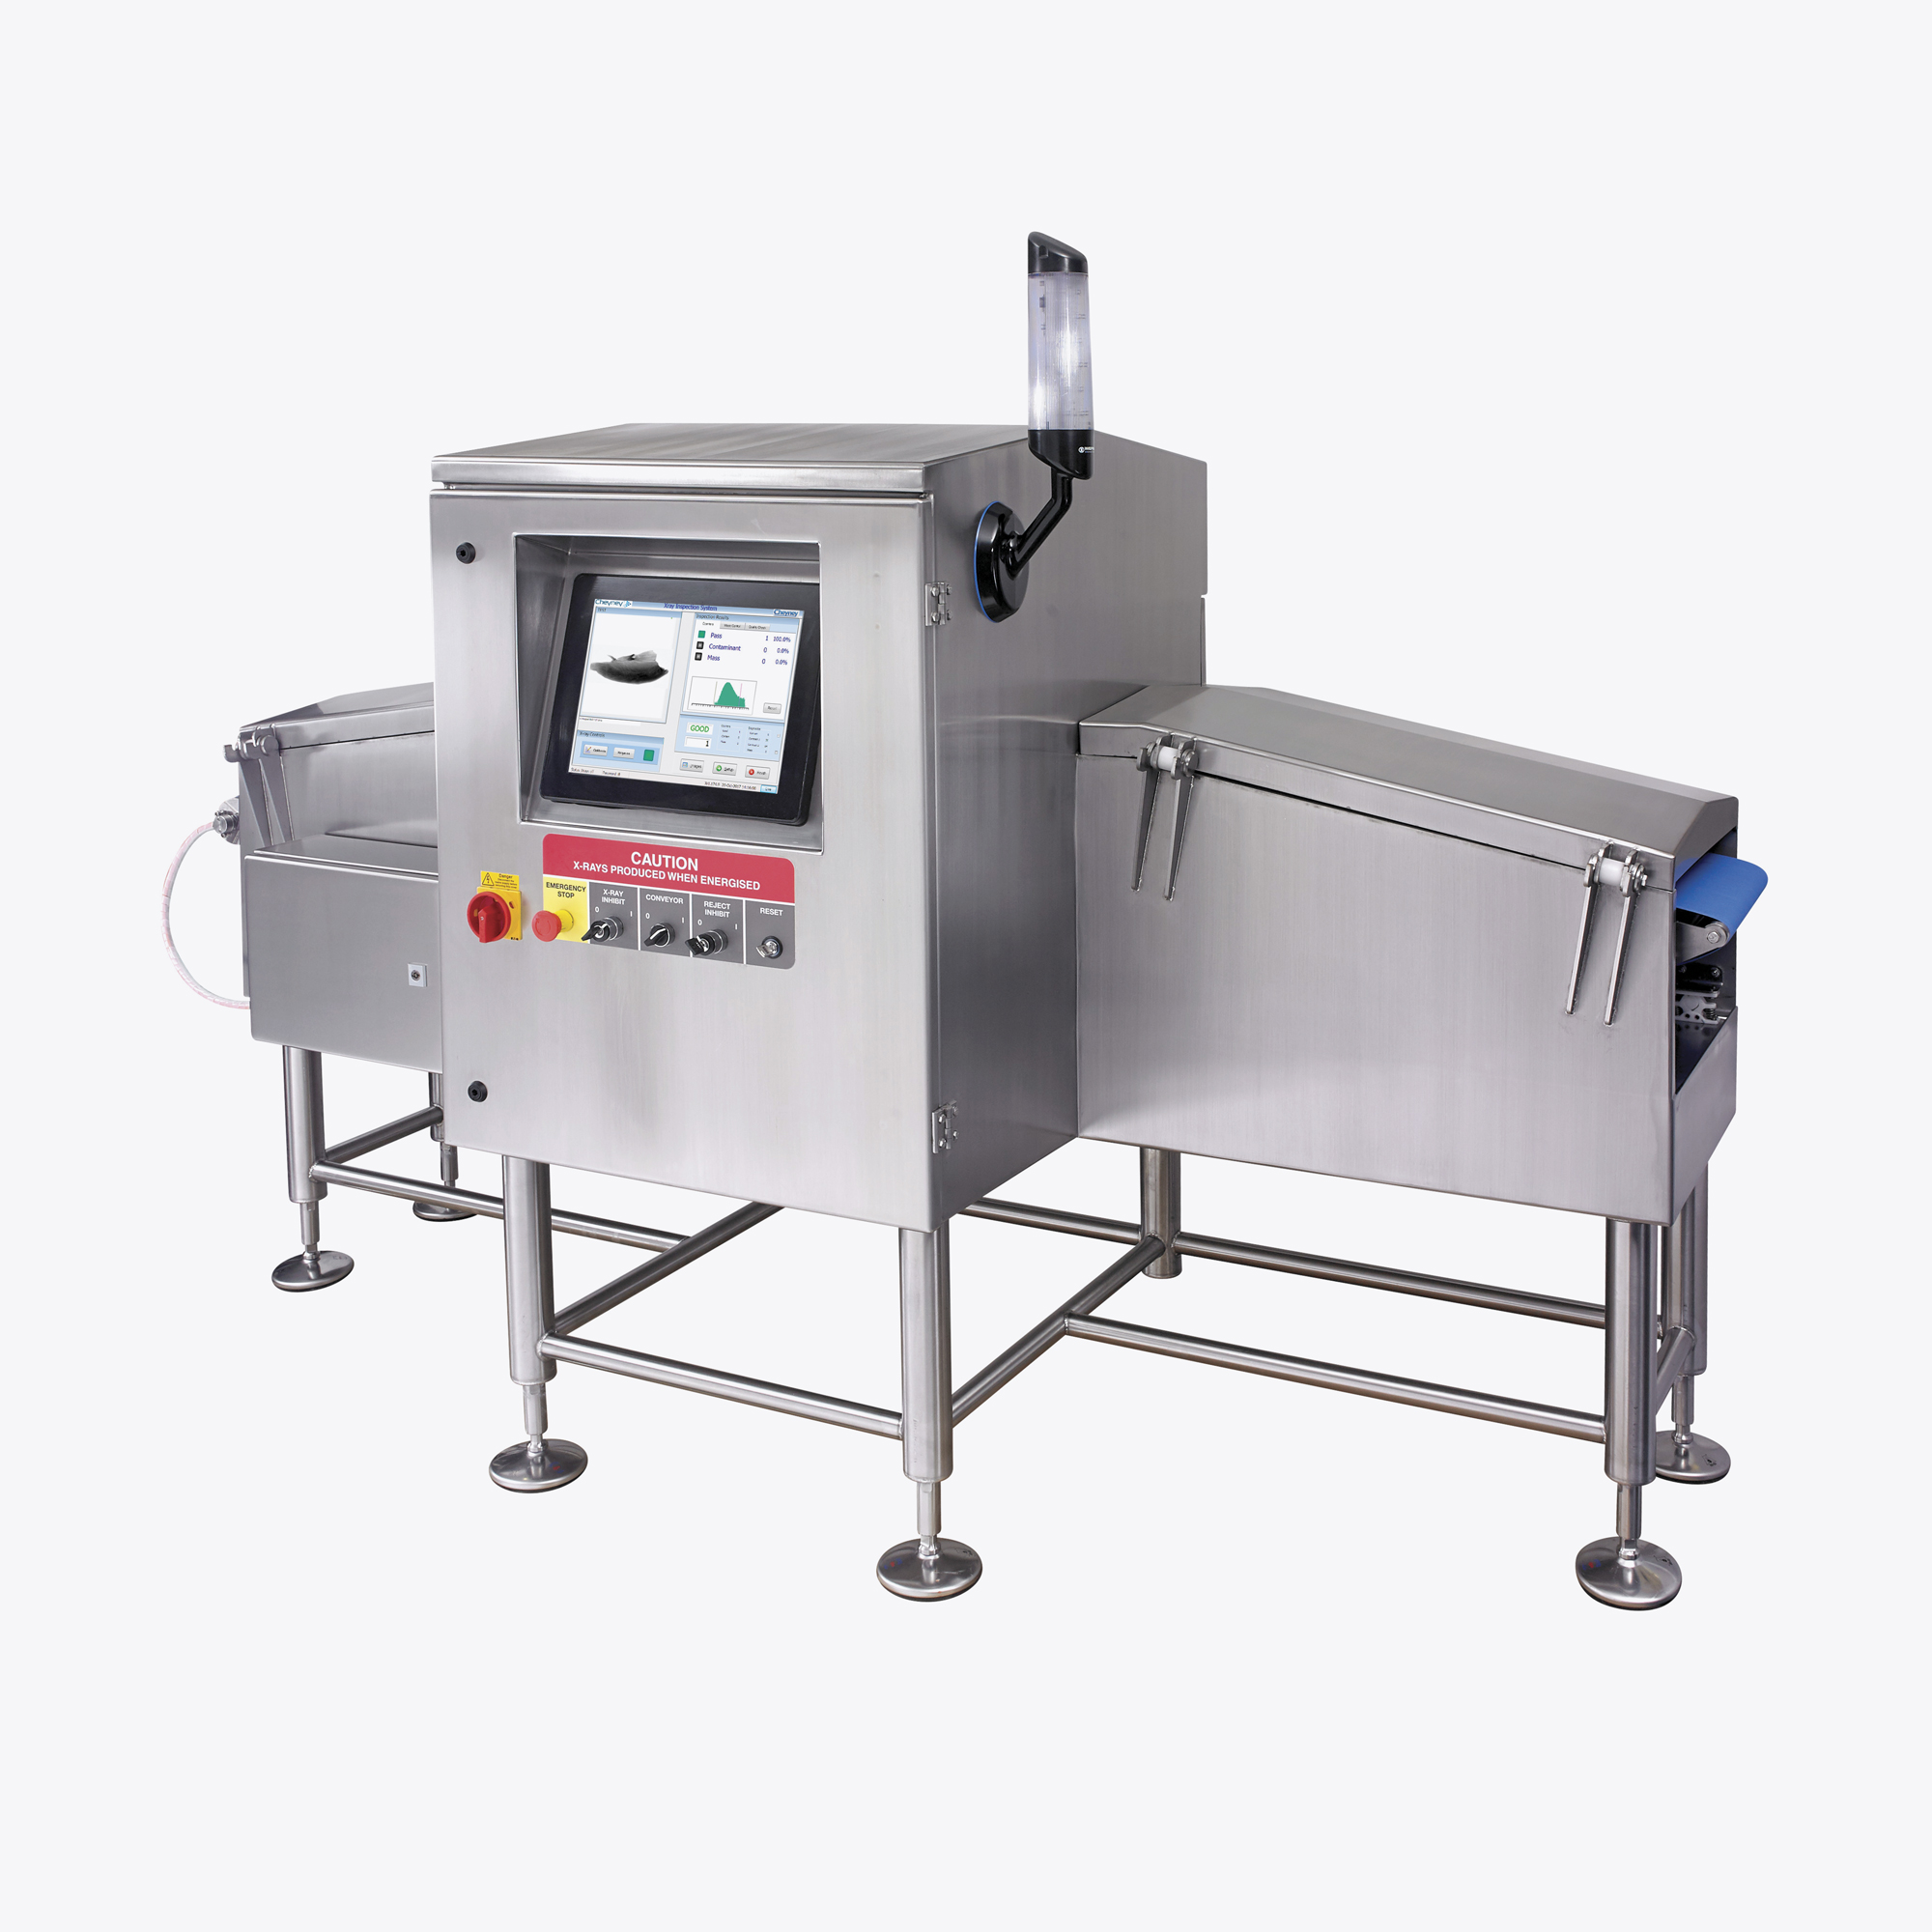 G120 x-ray inspection system